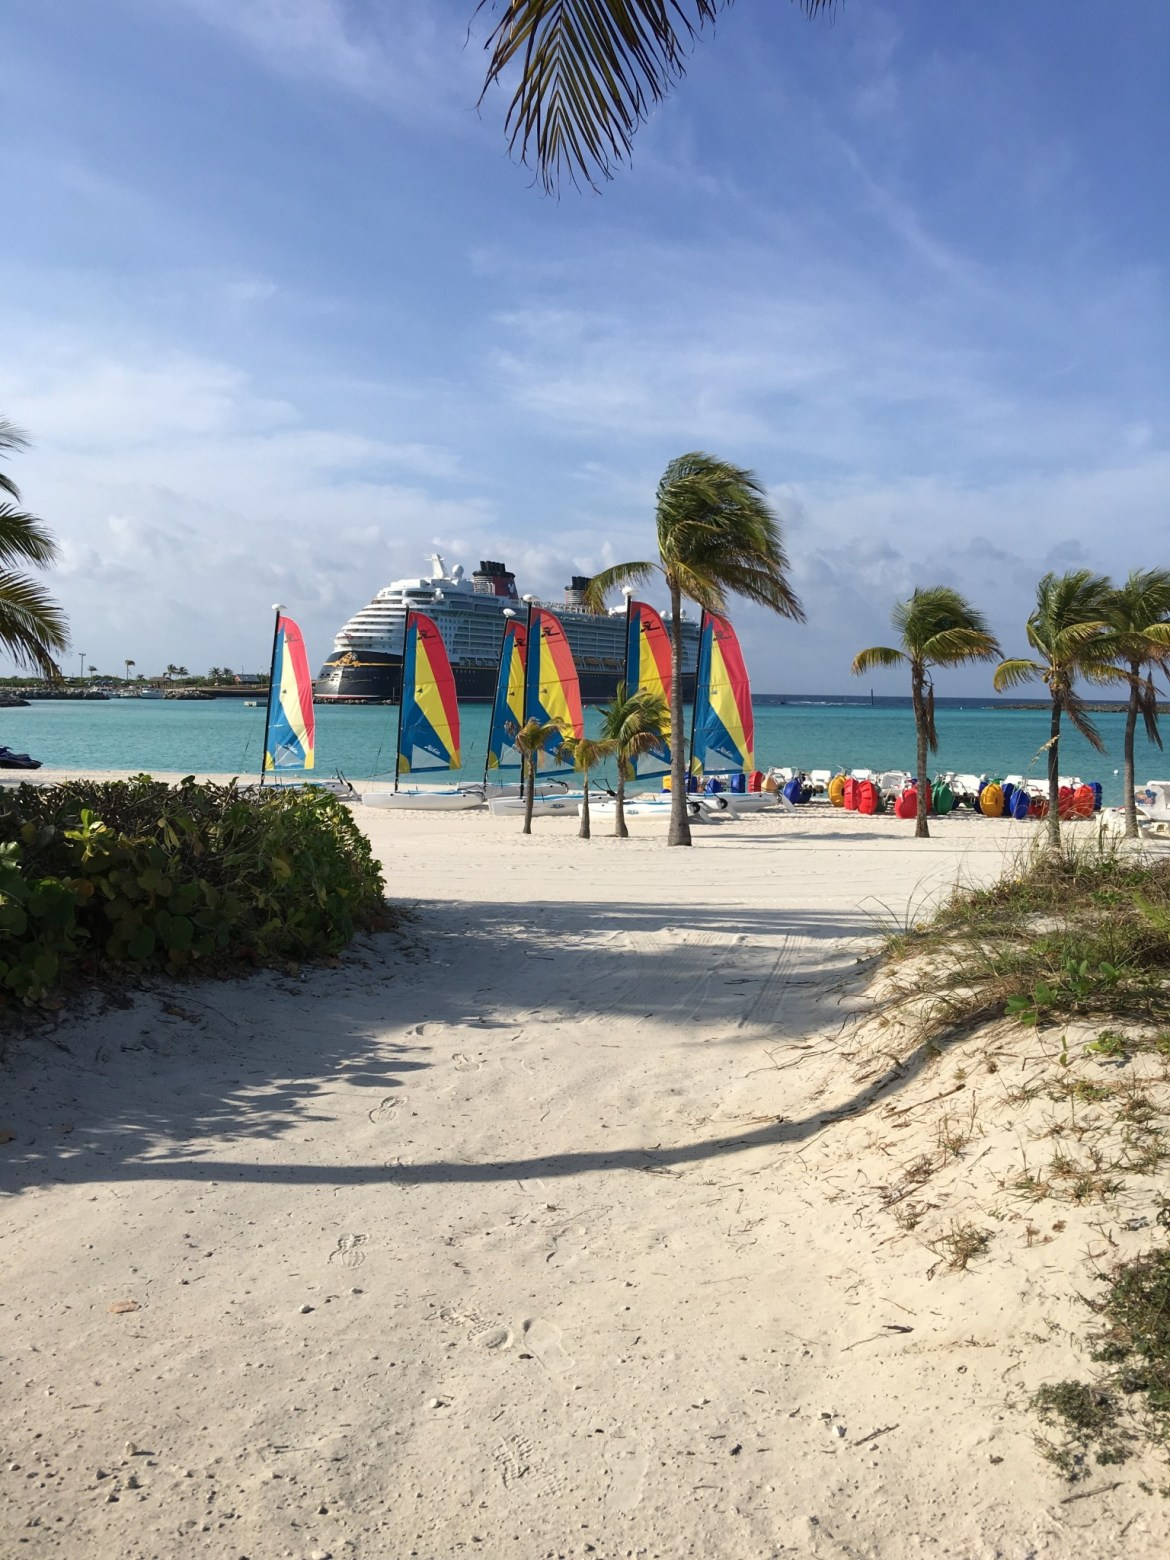 Castaway Cay – Fun Things to Do on Disney's Private Island in the Bahamas